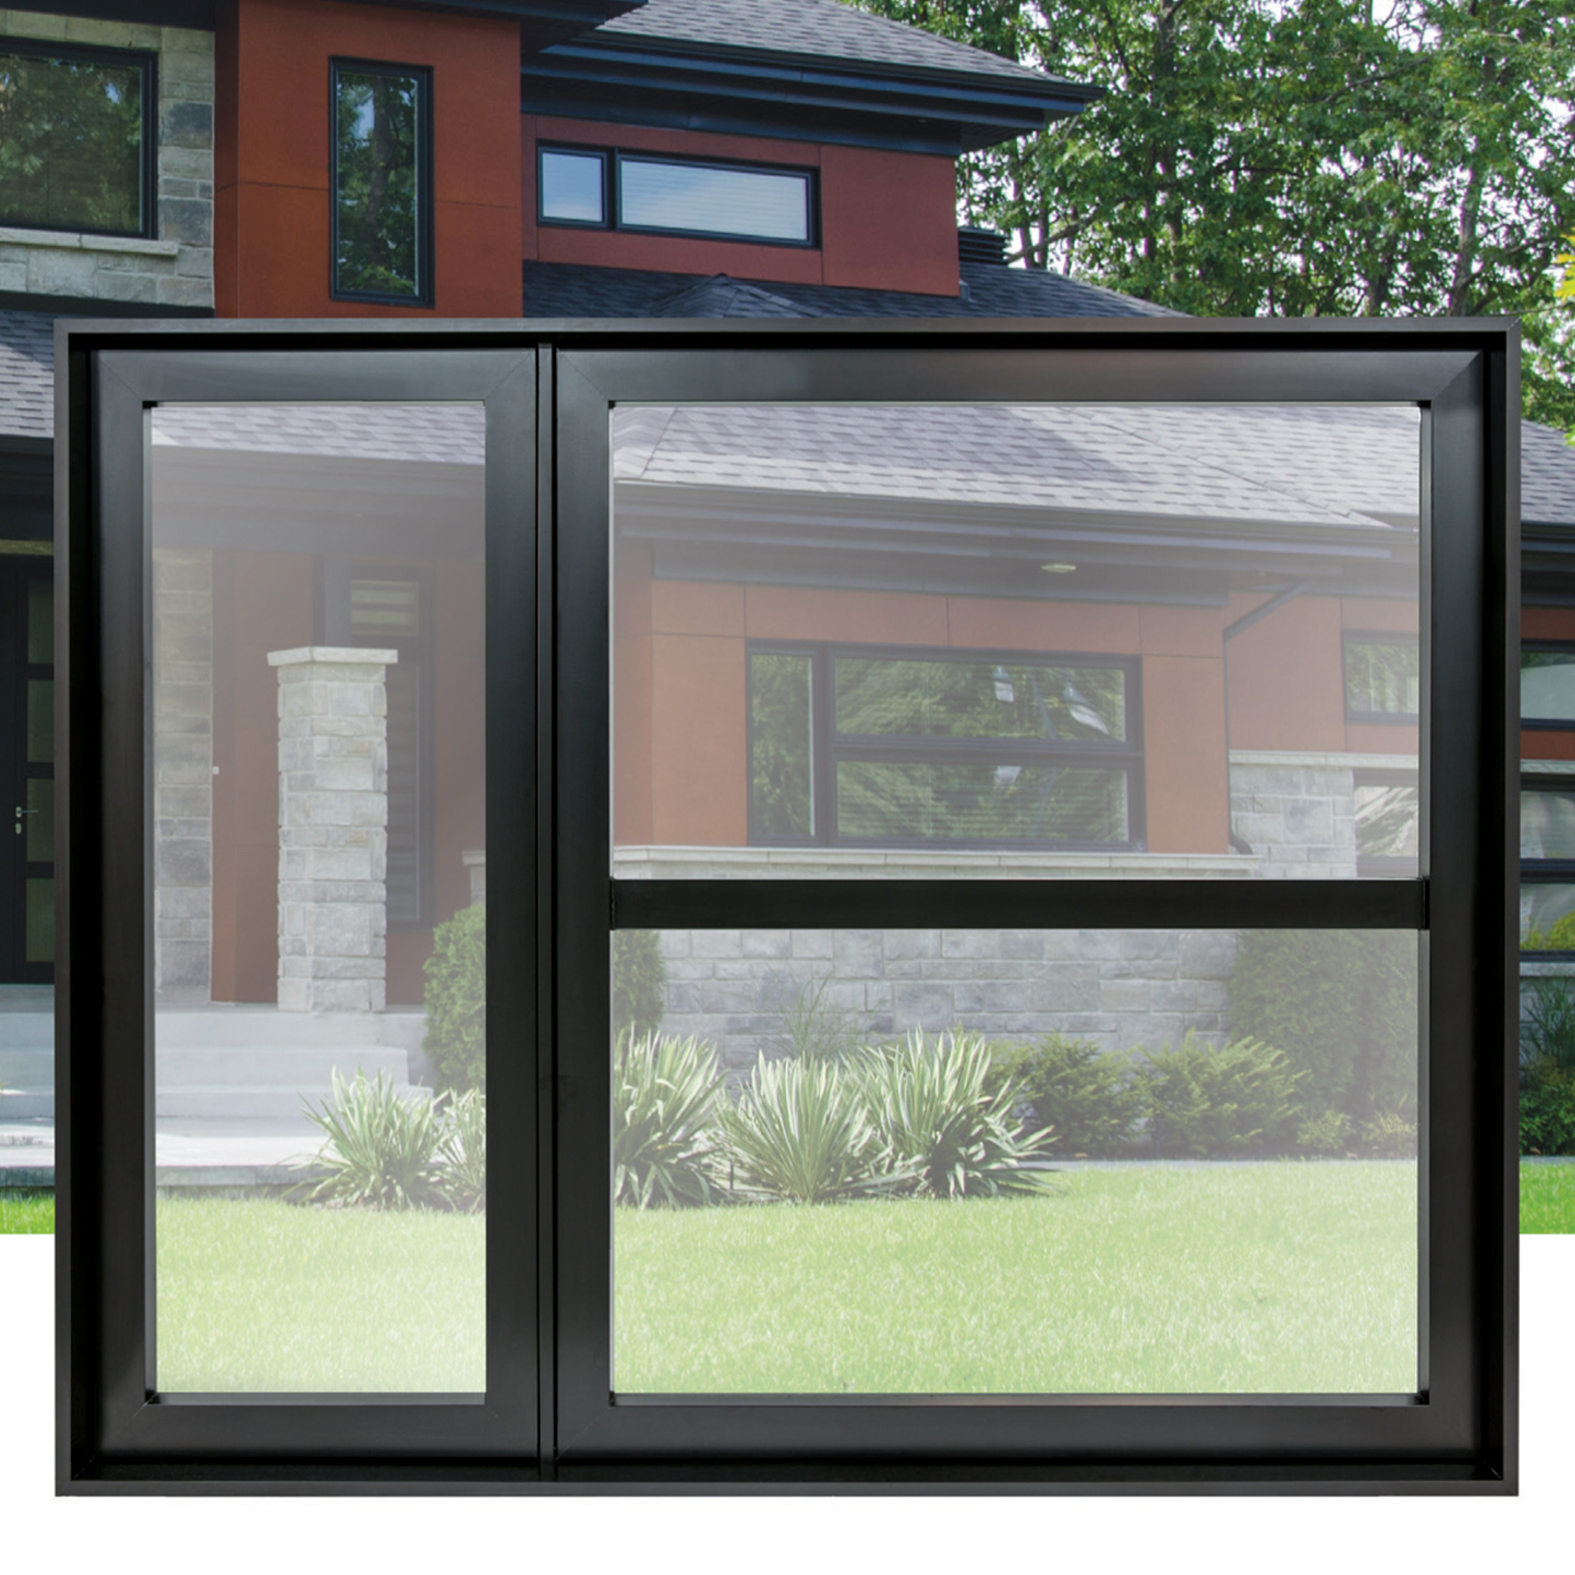 Pvc casement or awning window system 3000 series portatec for Pvc window frame